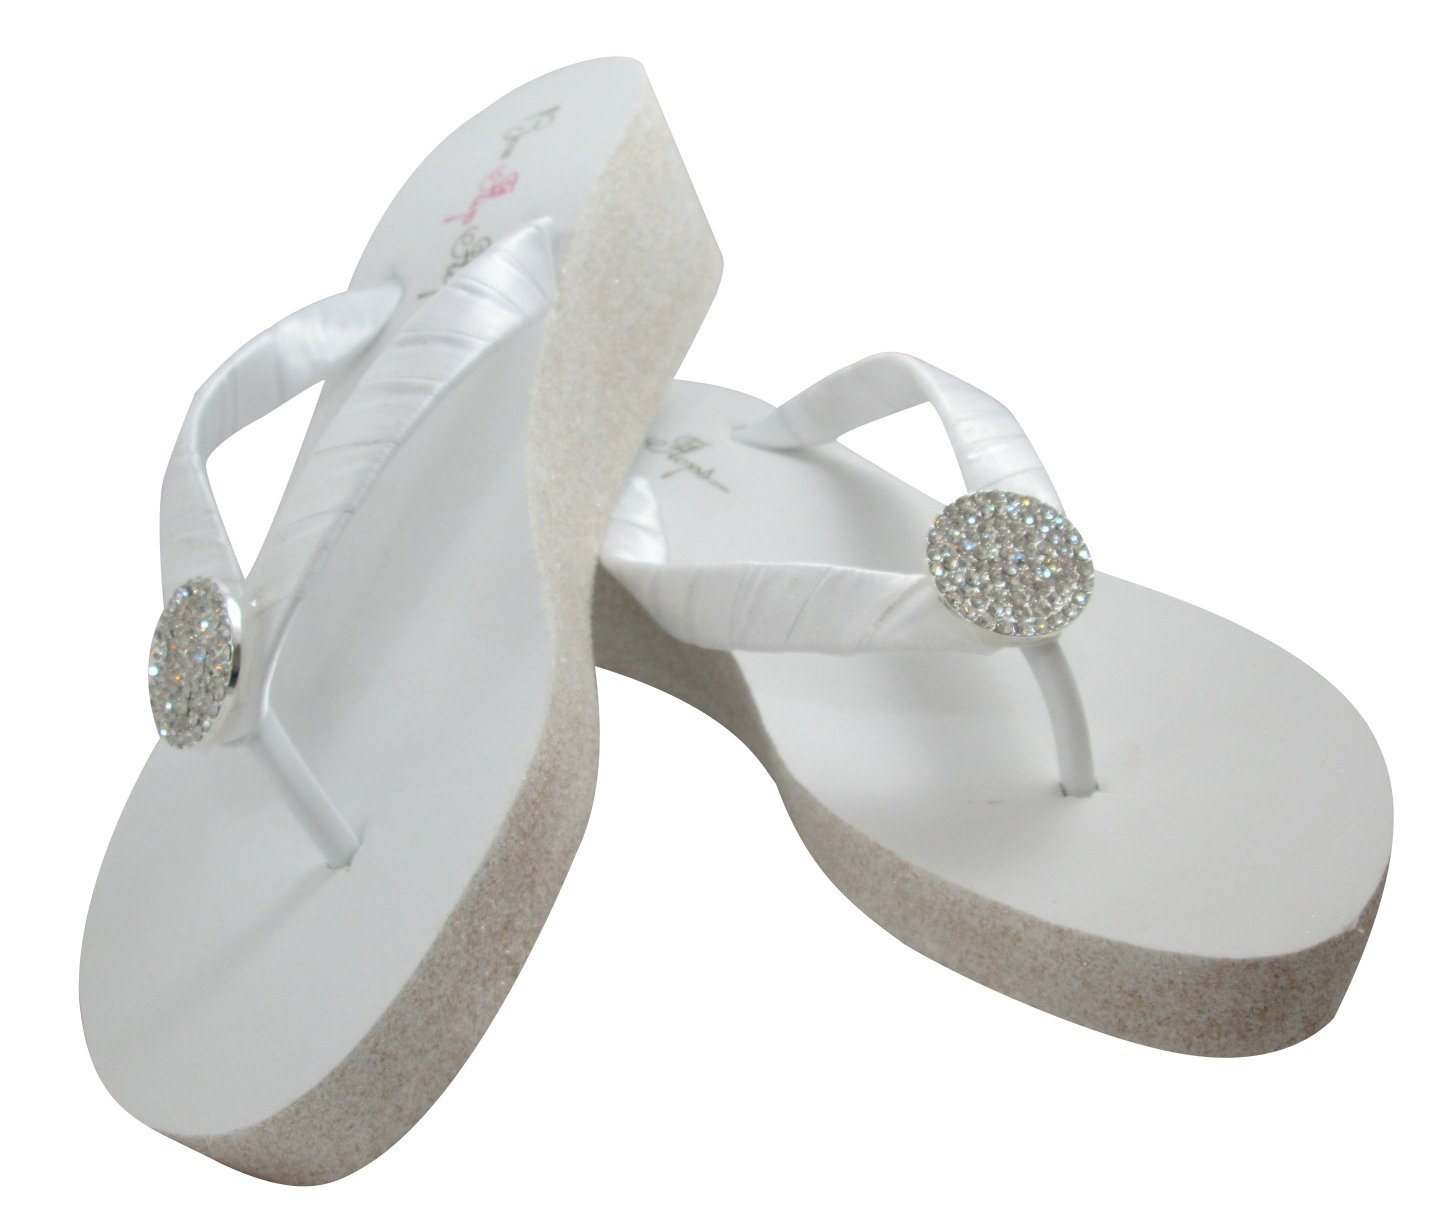 56b4f01bd3f3 Amazon.com  Glitter 2 inch Heel Flip Flops Wedding White Wedges White  Silver Glitter Wedge Jewel Wedding Bridal Flip Flops - Customizable Colors  and Bling  ...